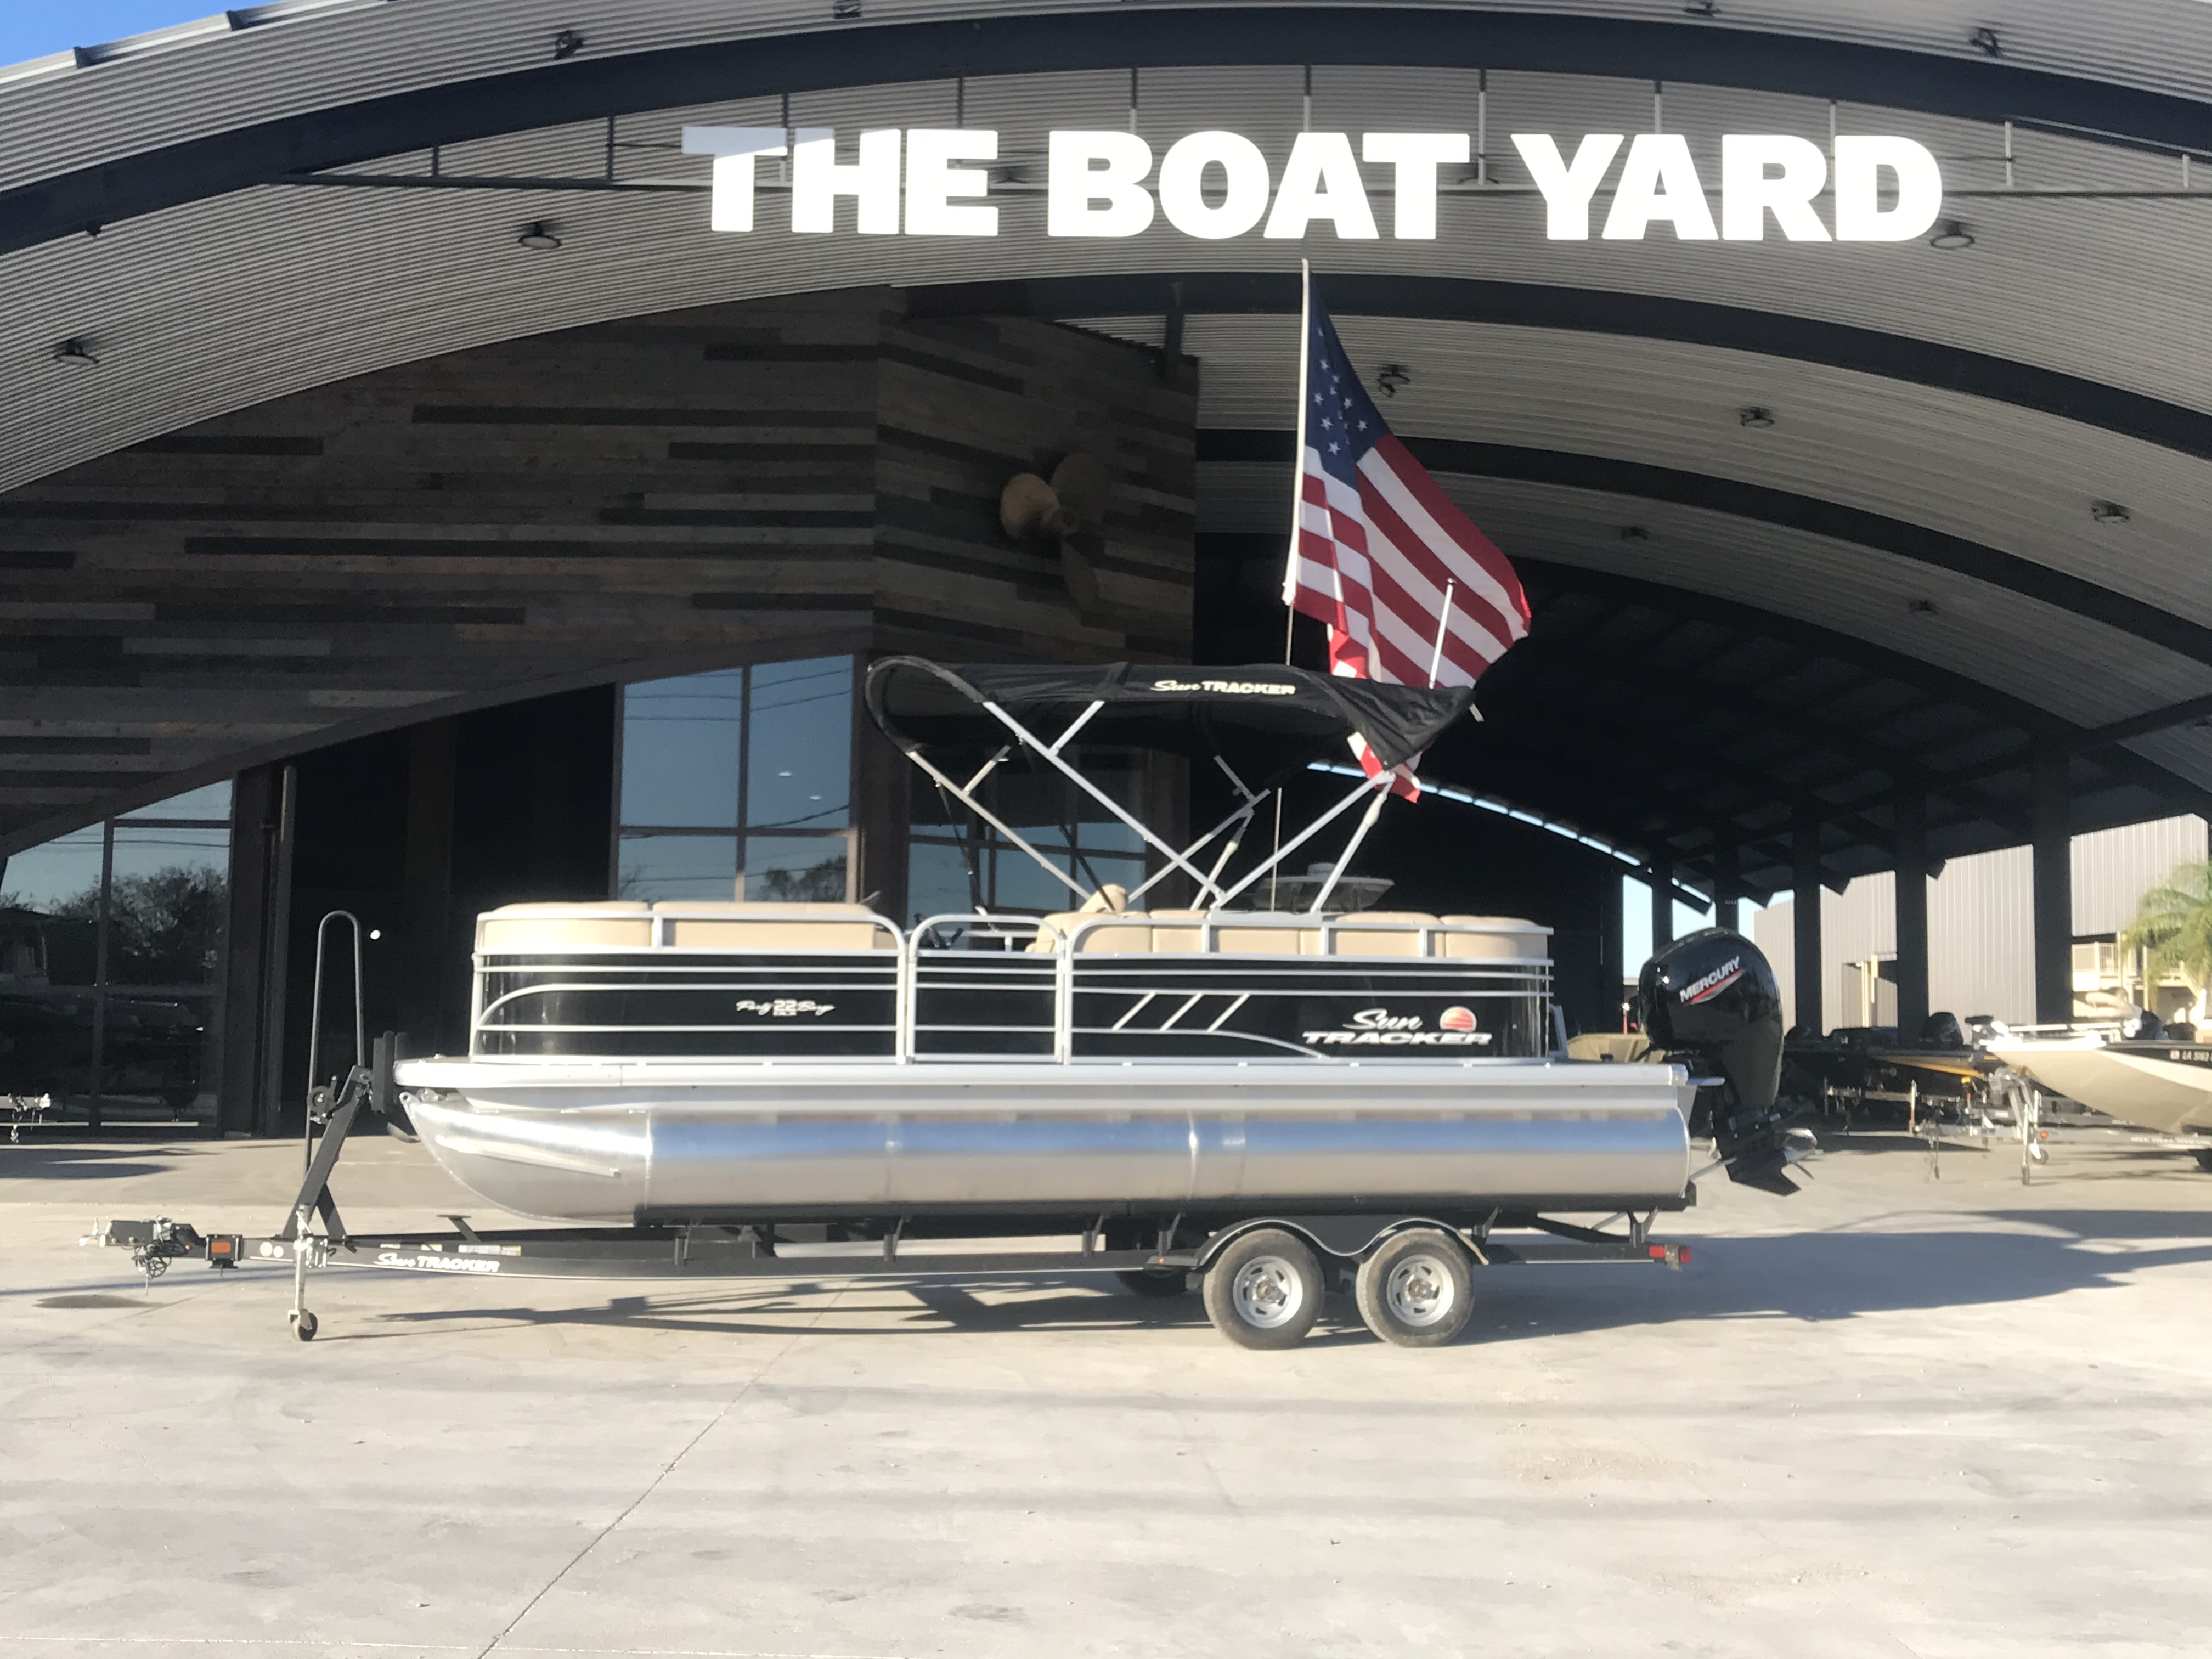 2022 Sun Tracker boat for sale, model of the boat is 22 Party Barge DLX & Image # 1 of 15